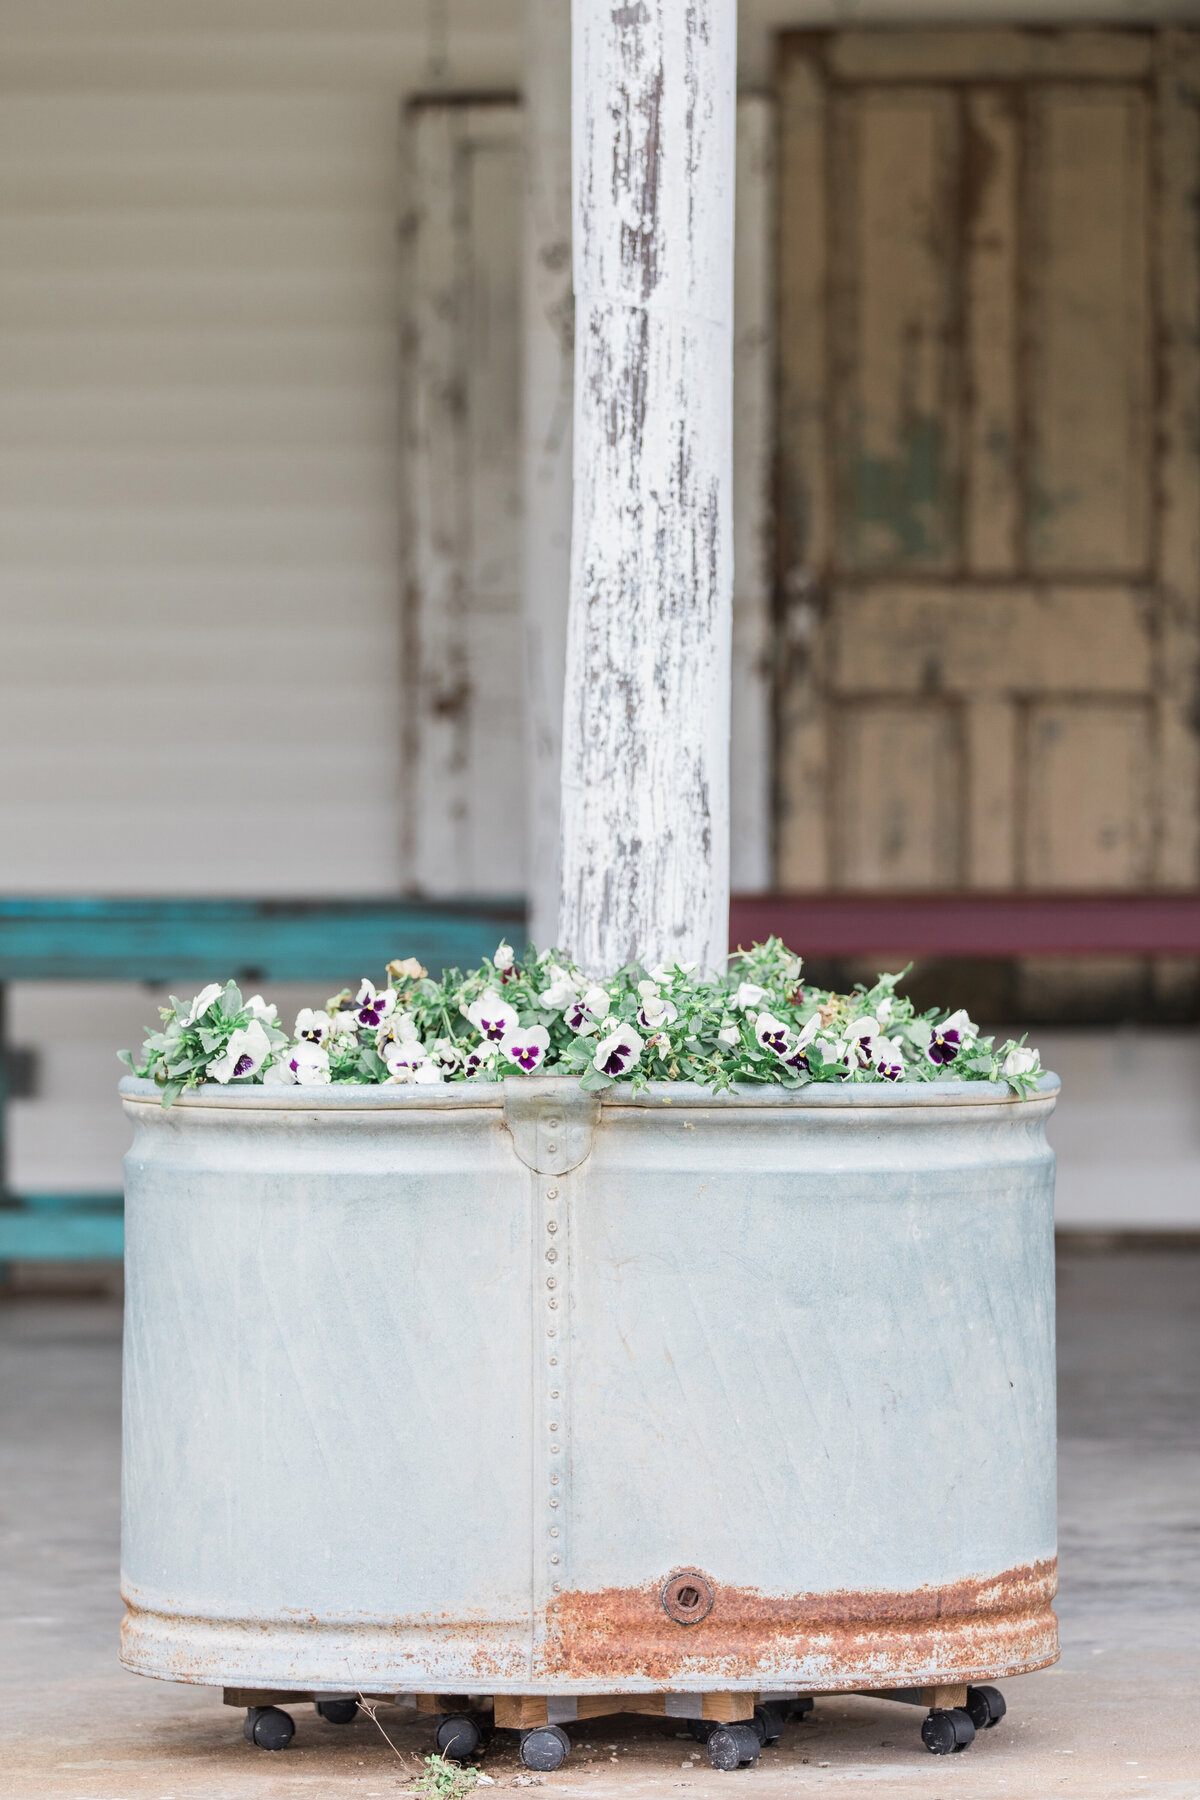 A feed trough filled with florals for a wedding